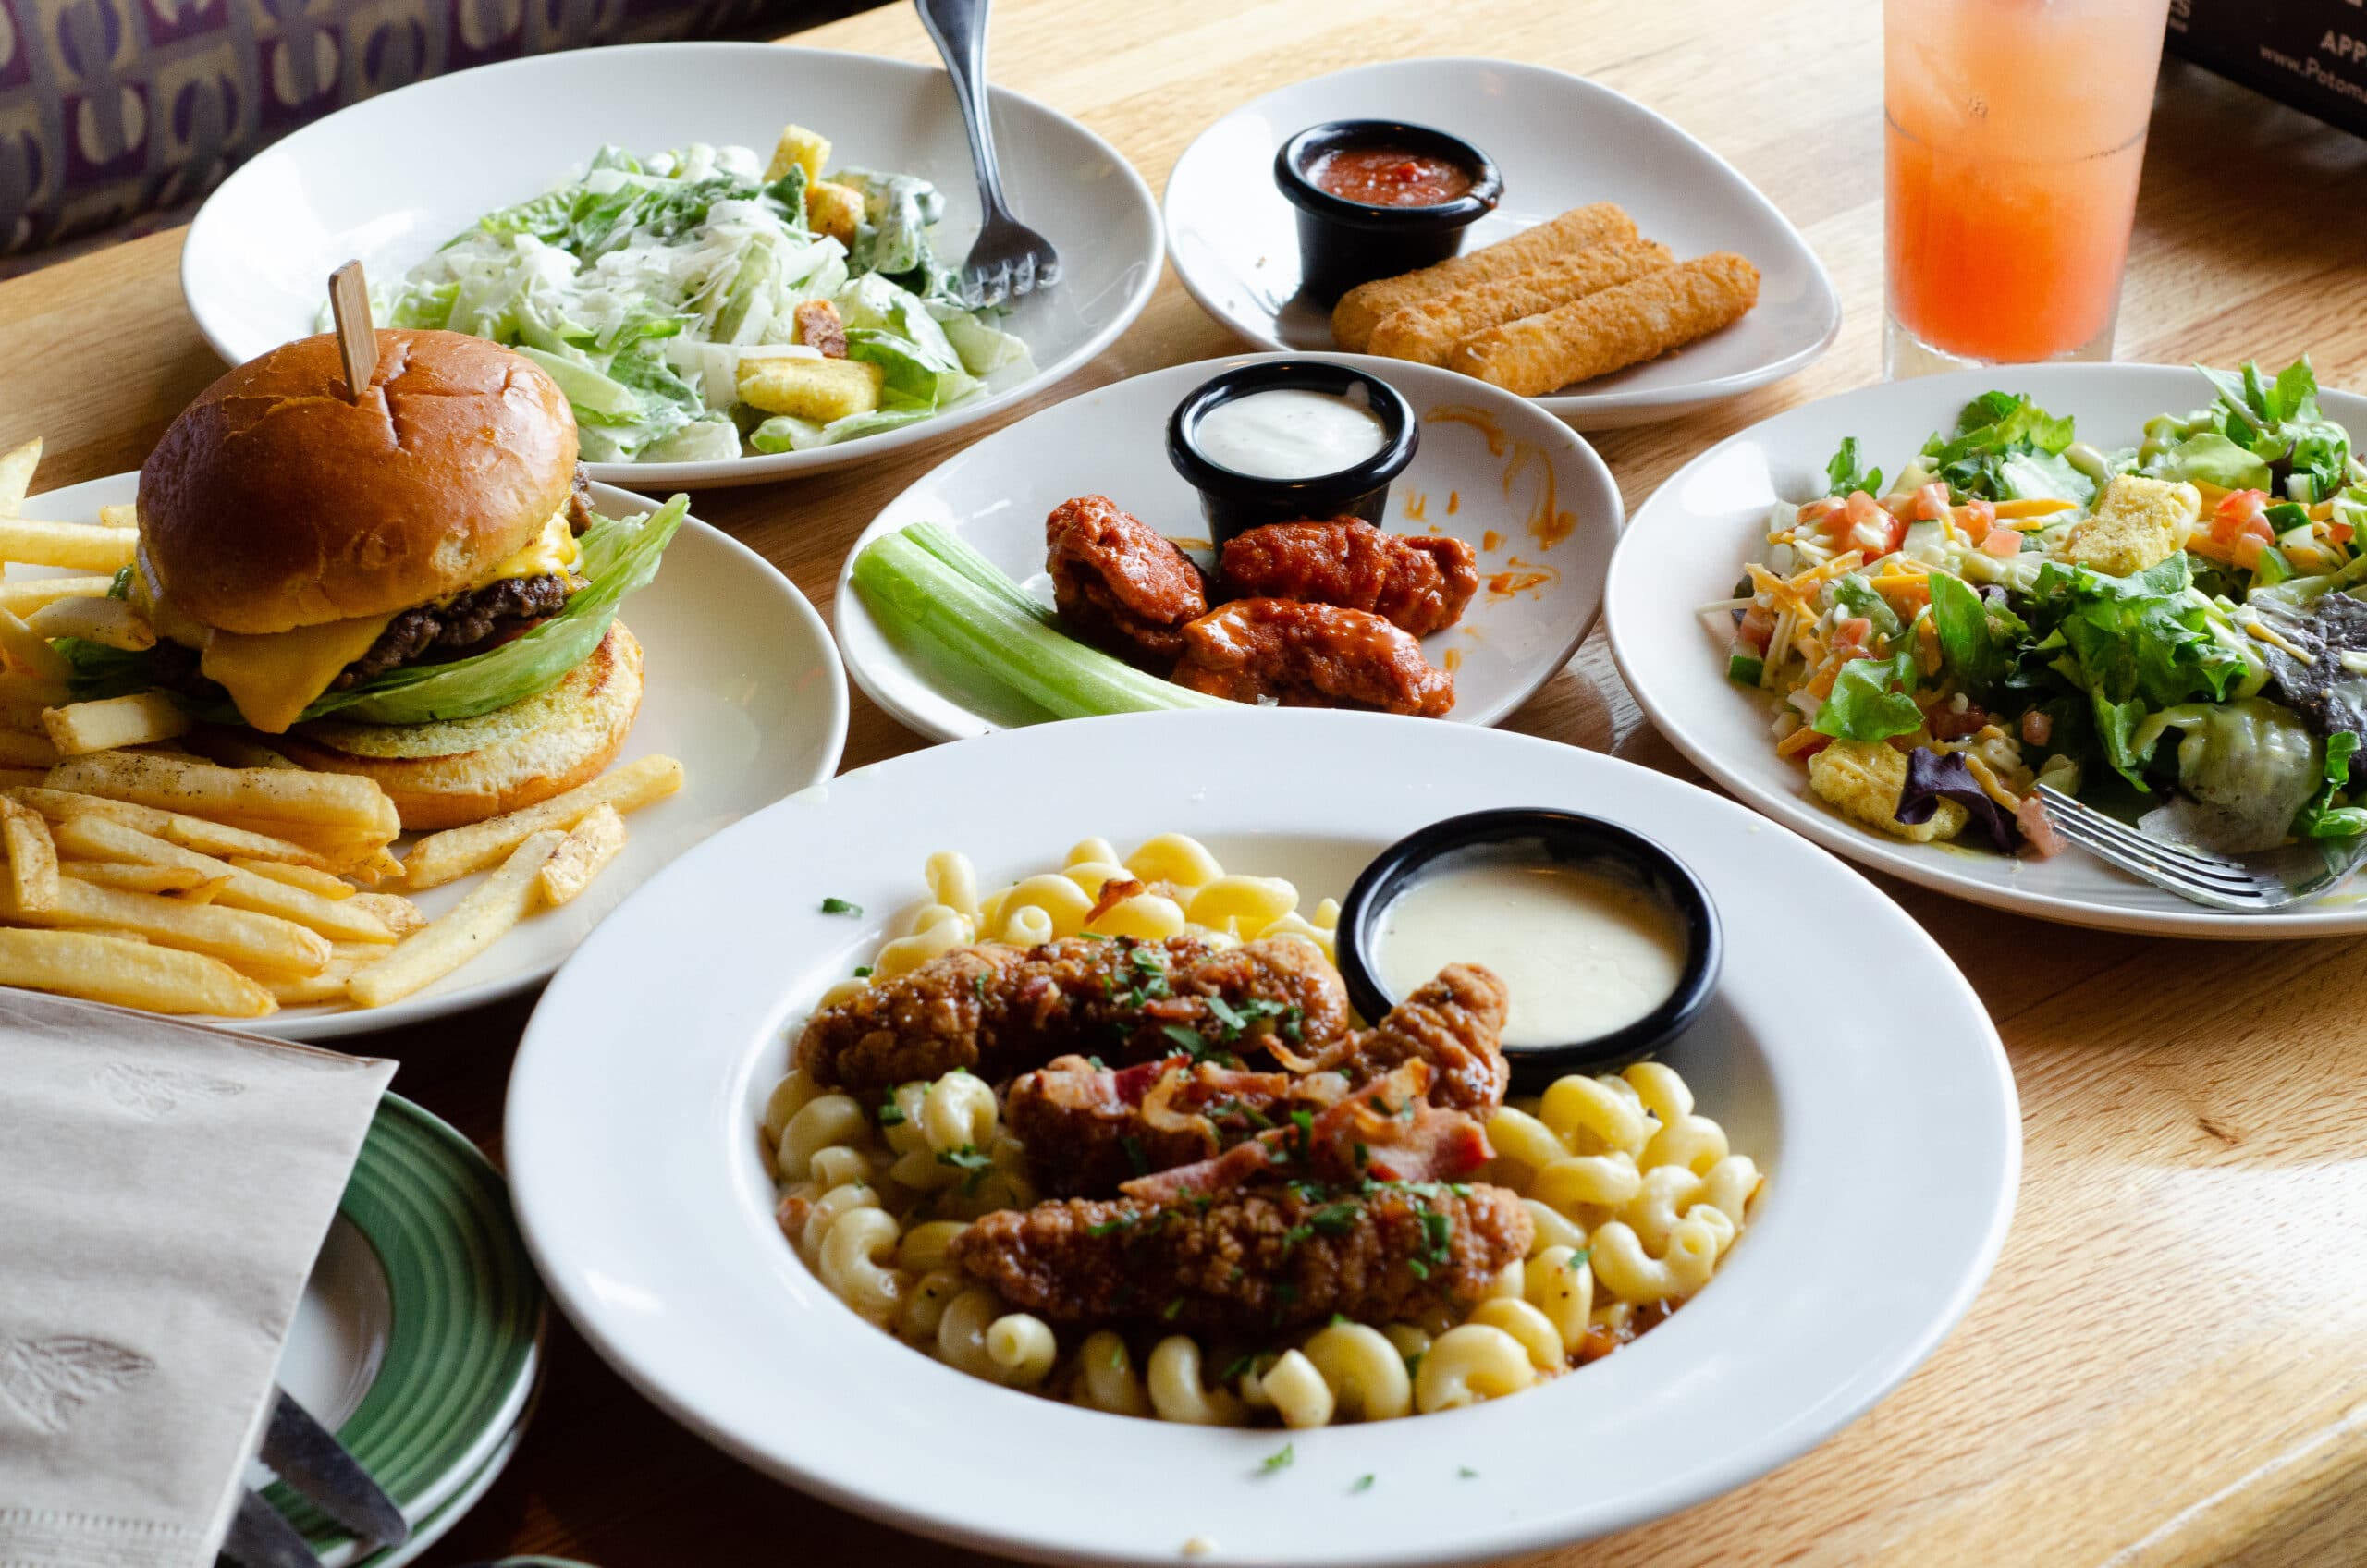 Table of food chosen from the Applebee's Three-Course Meal promotion. Take advantage of the Applebee's Delicious New Three-Course Meal's Starting at $12.